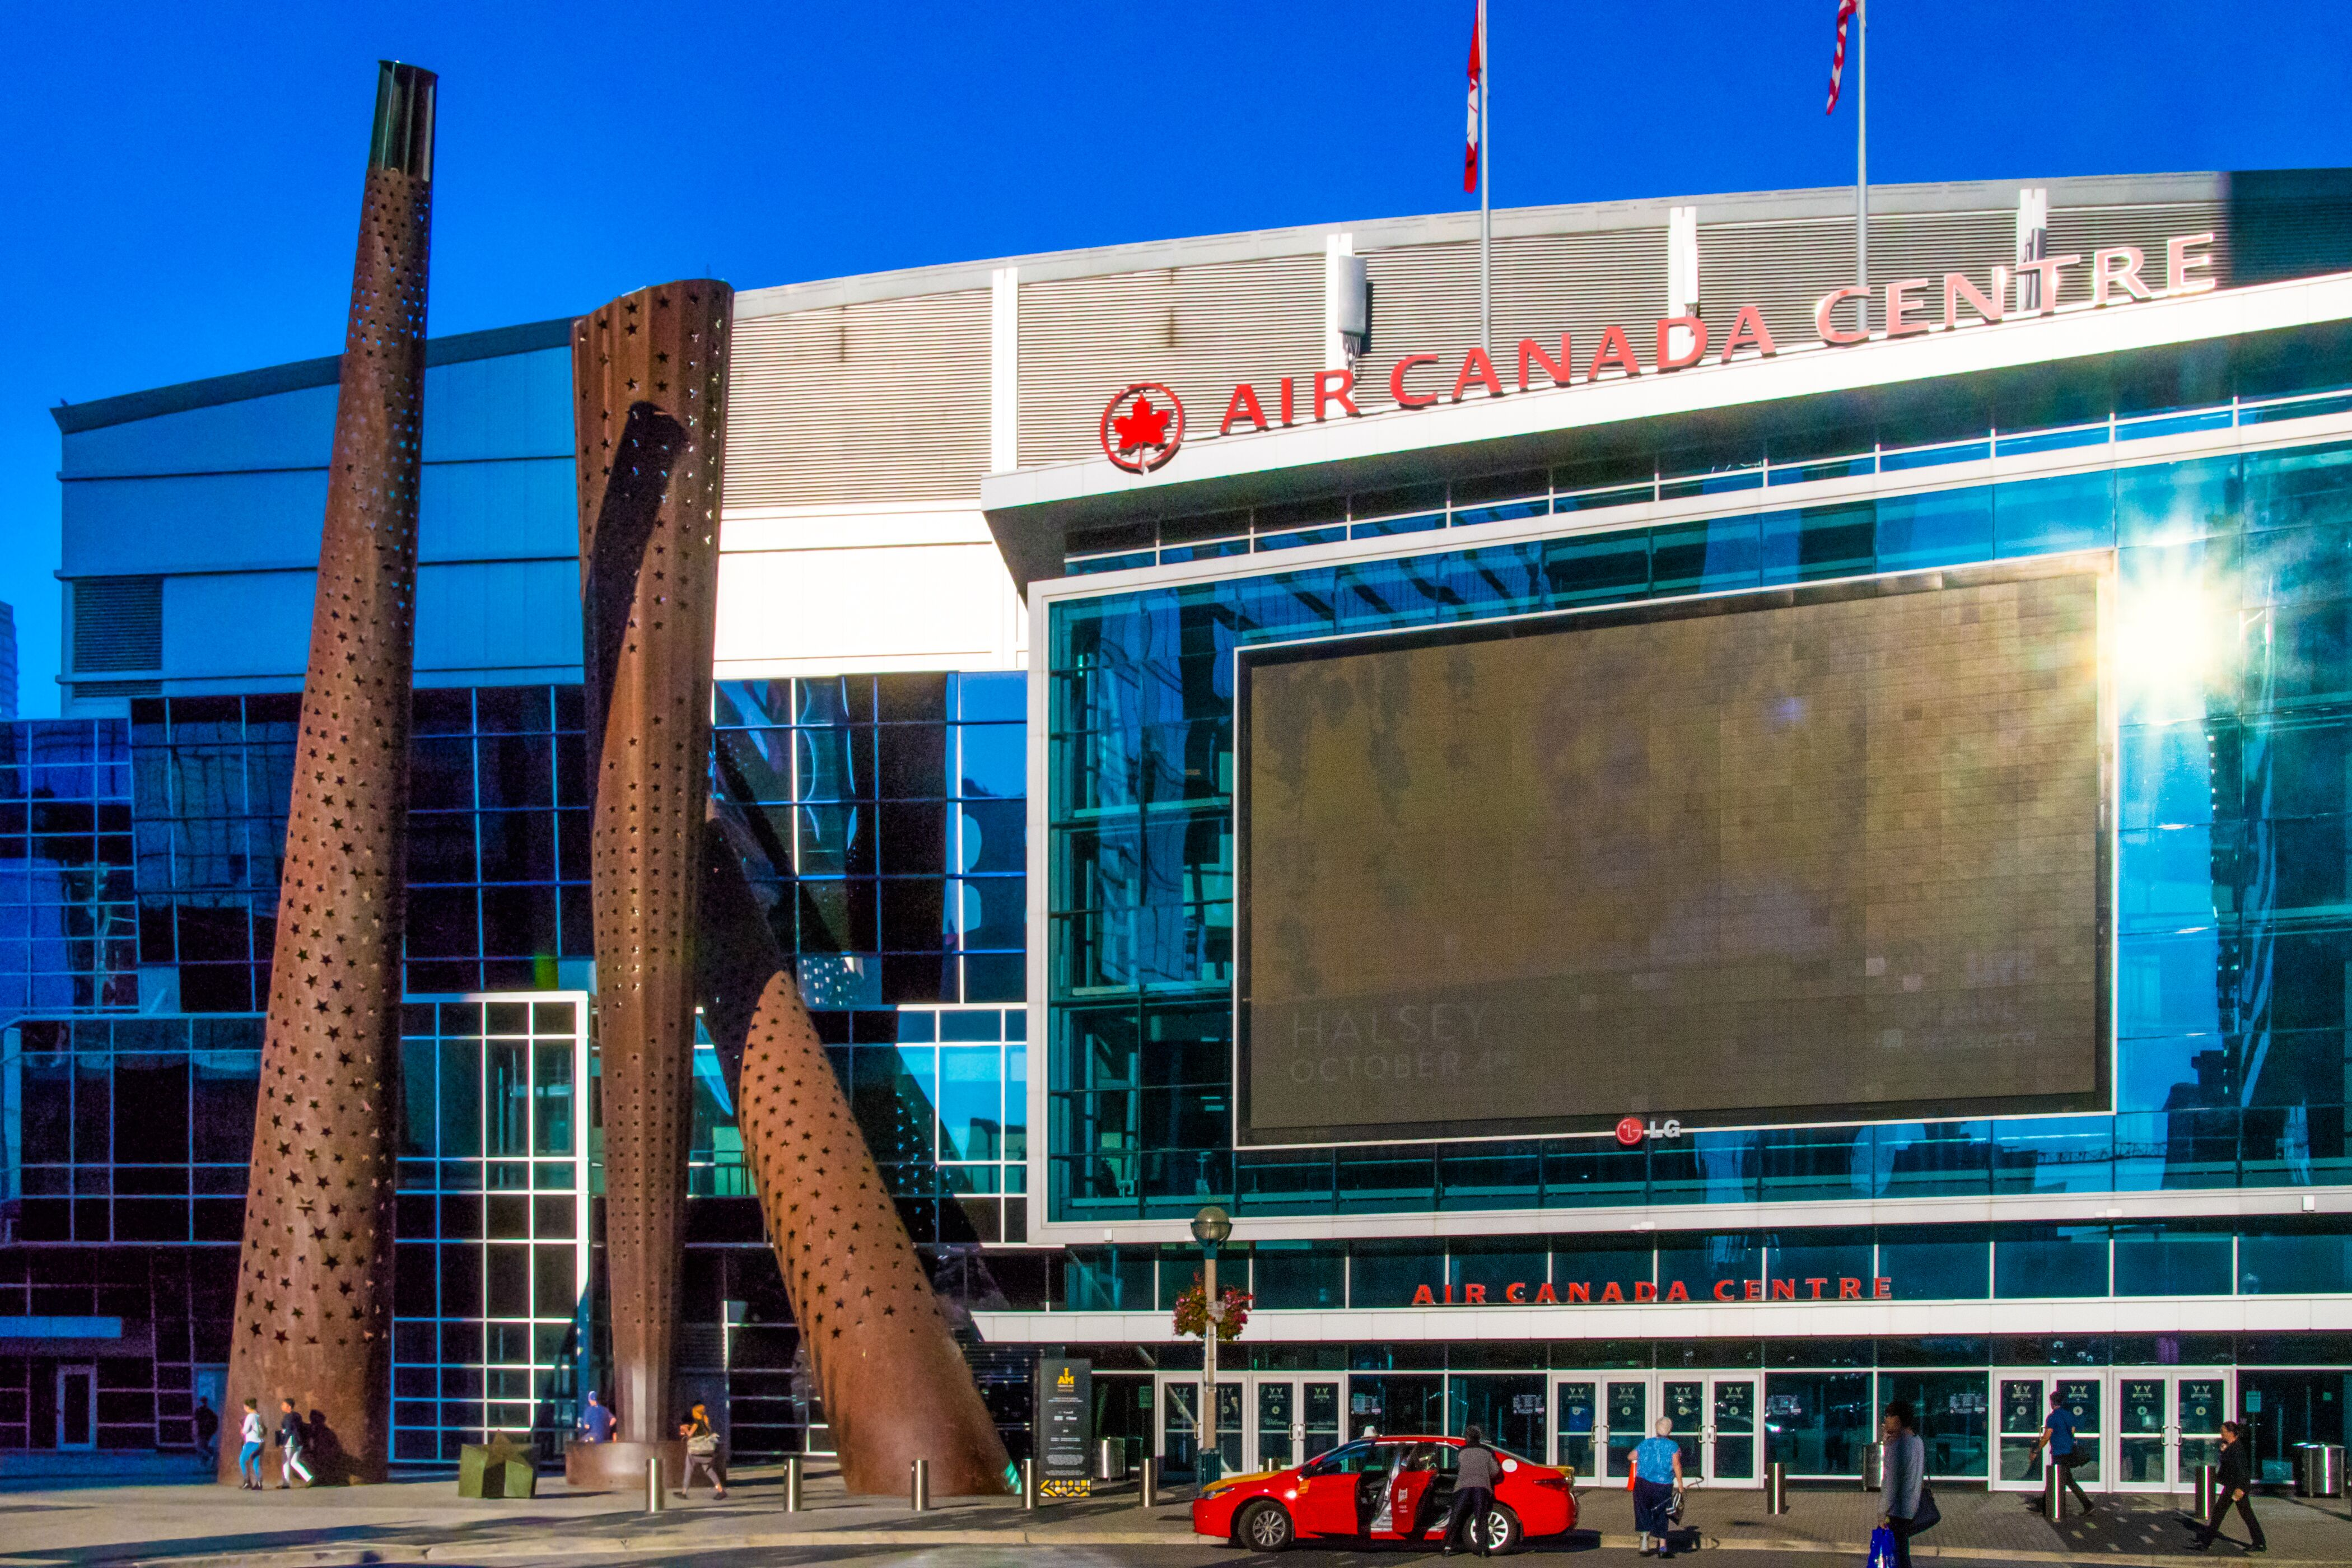 883396358-the-entrance-of-the-air-canada-centre-there-is-sunlight.jpg